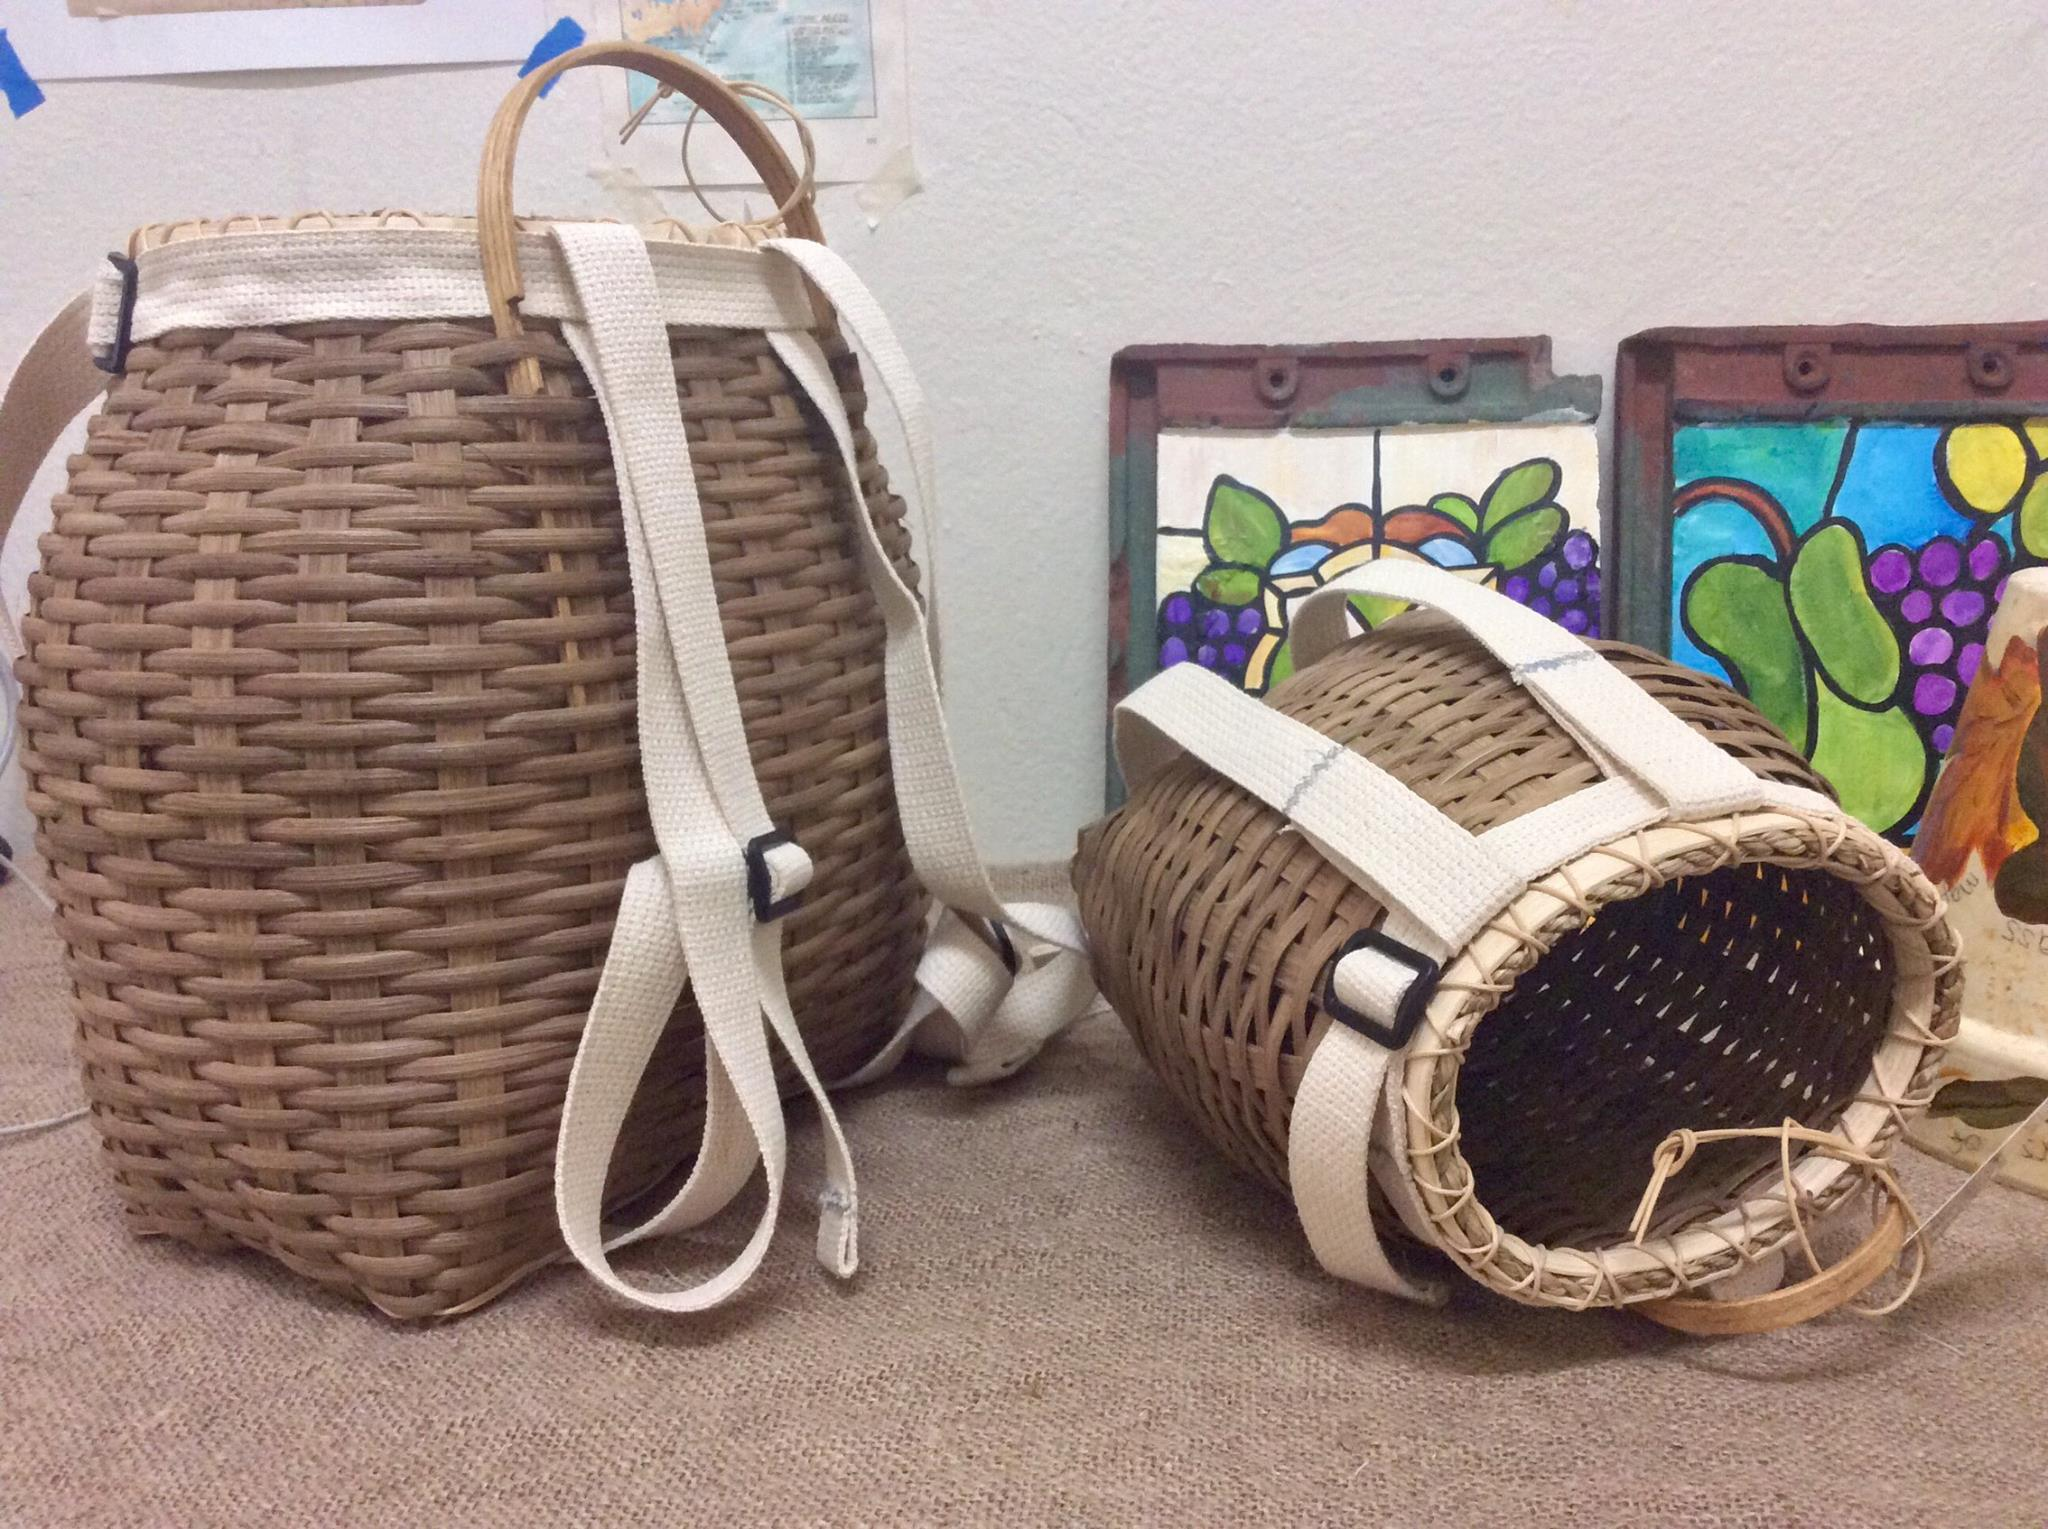 Backpack Baskets